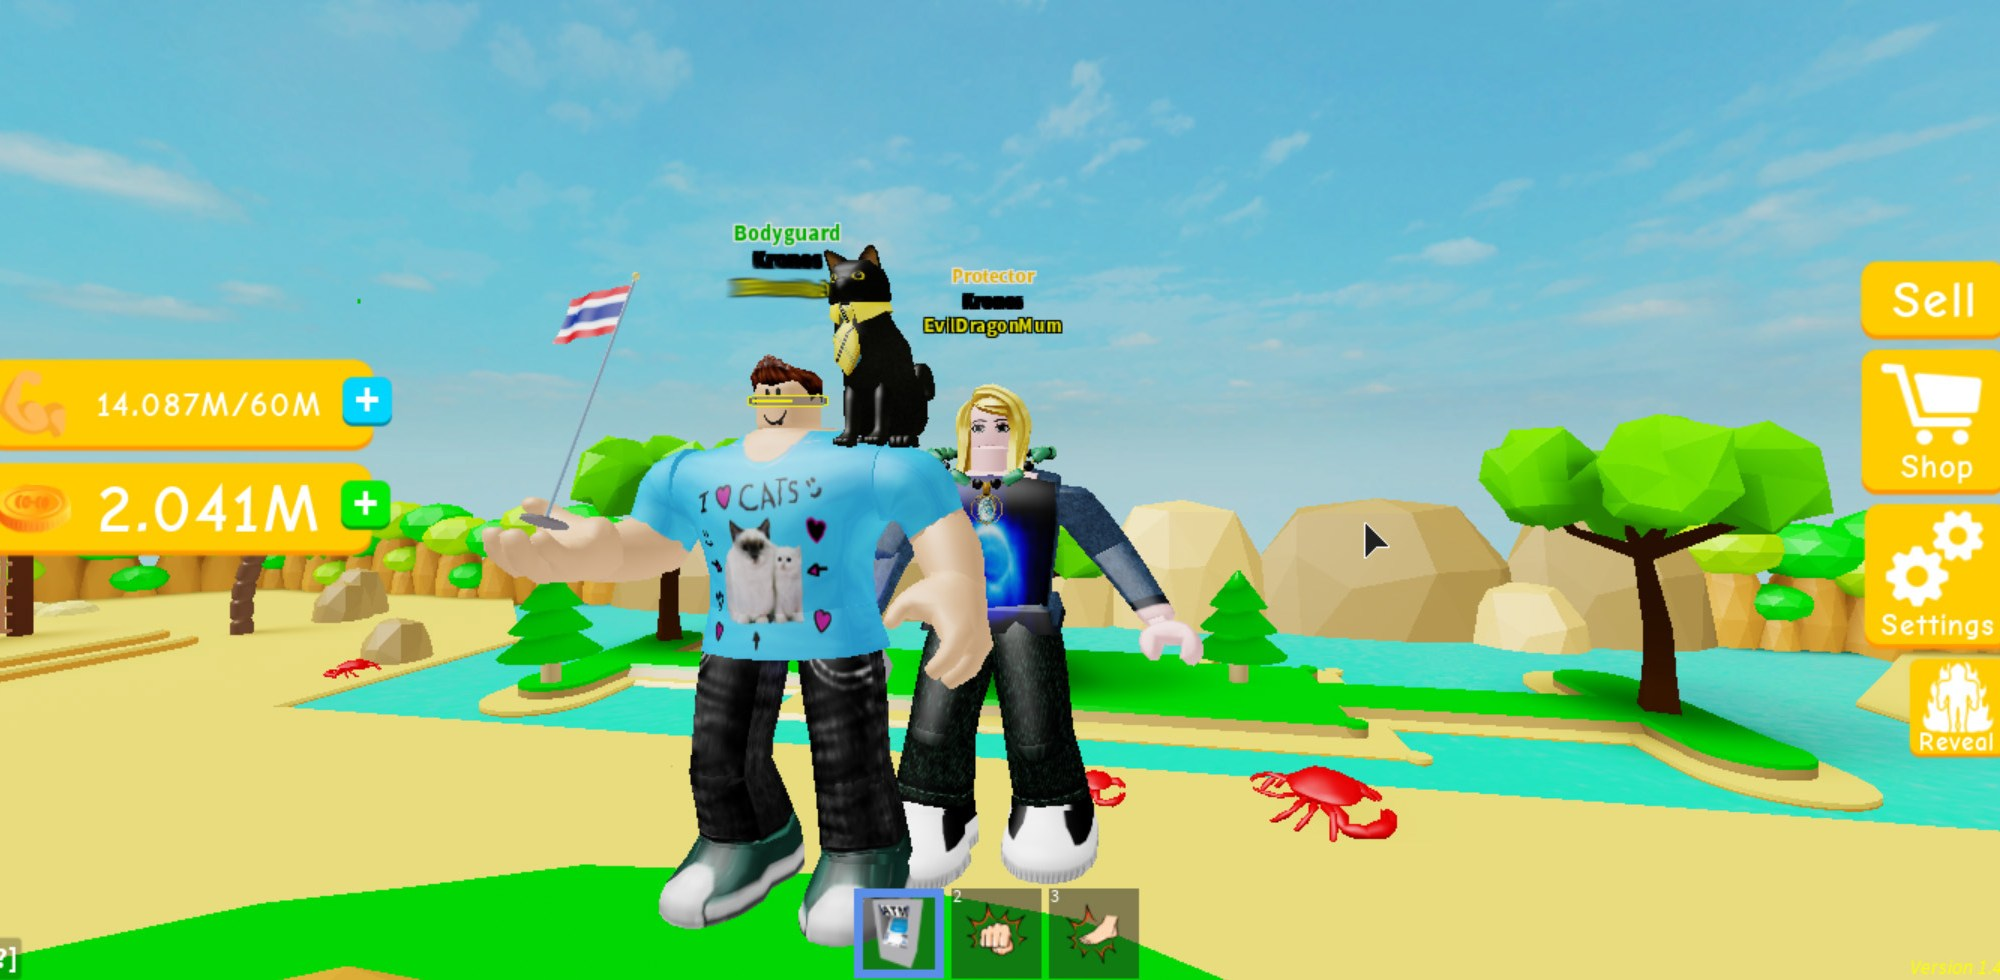 Roblox Find The Video Game Characters Free Robux Codes Live - can i make a at badimo at roblox jailbreak thumbnail or what